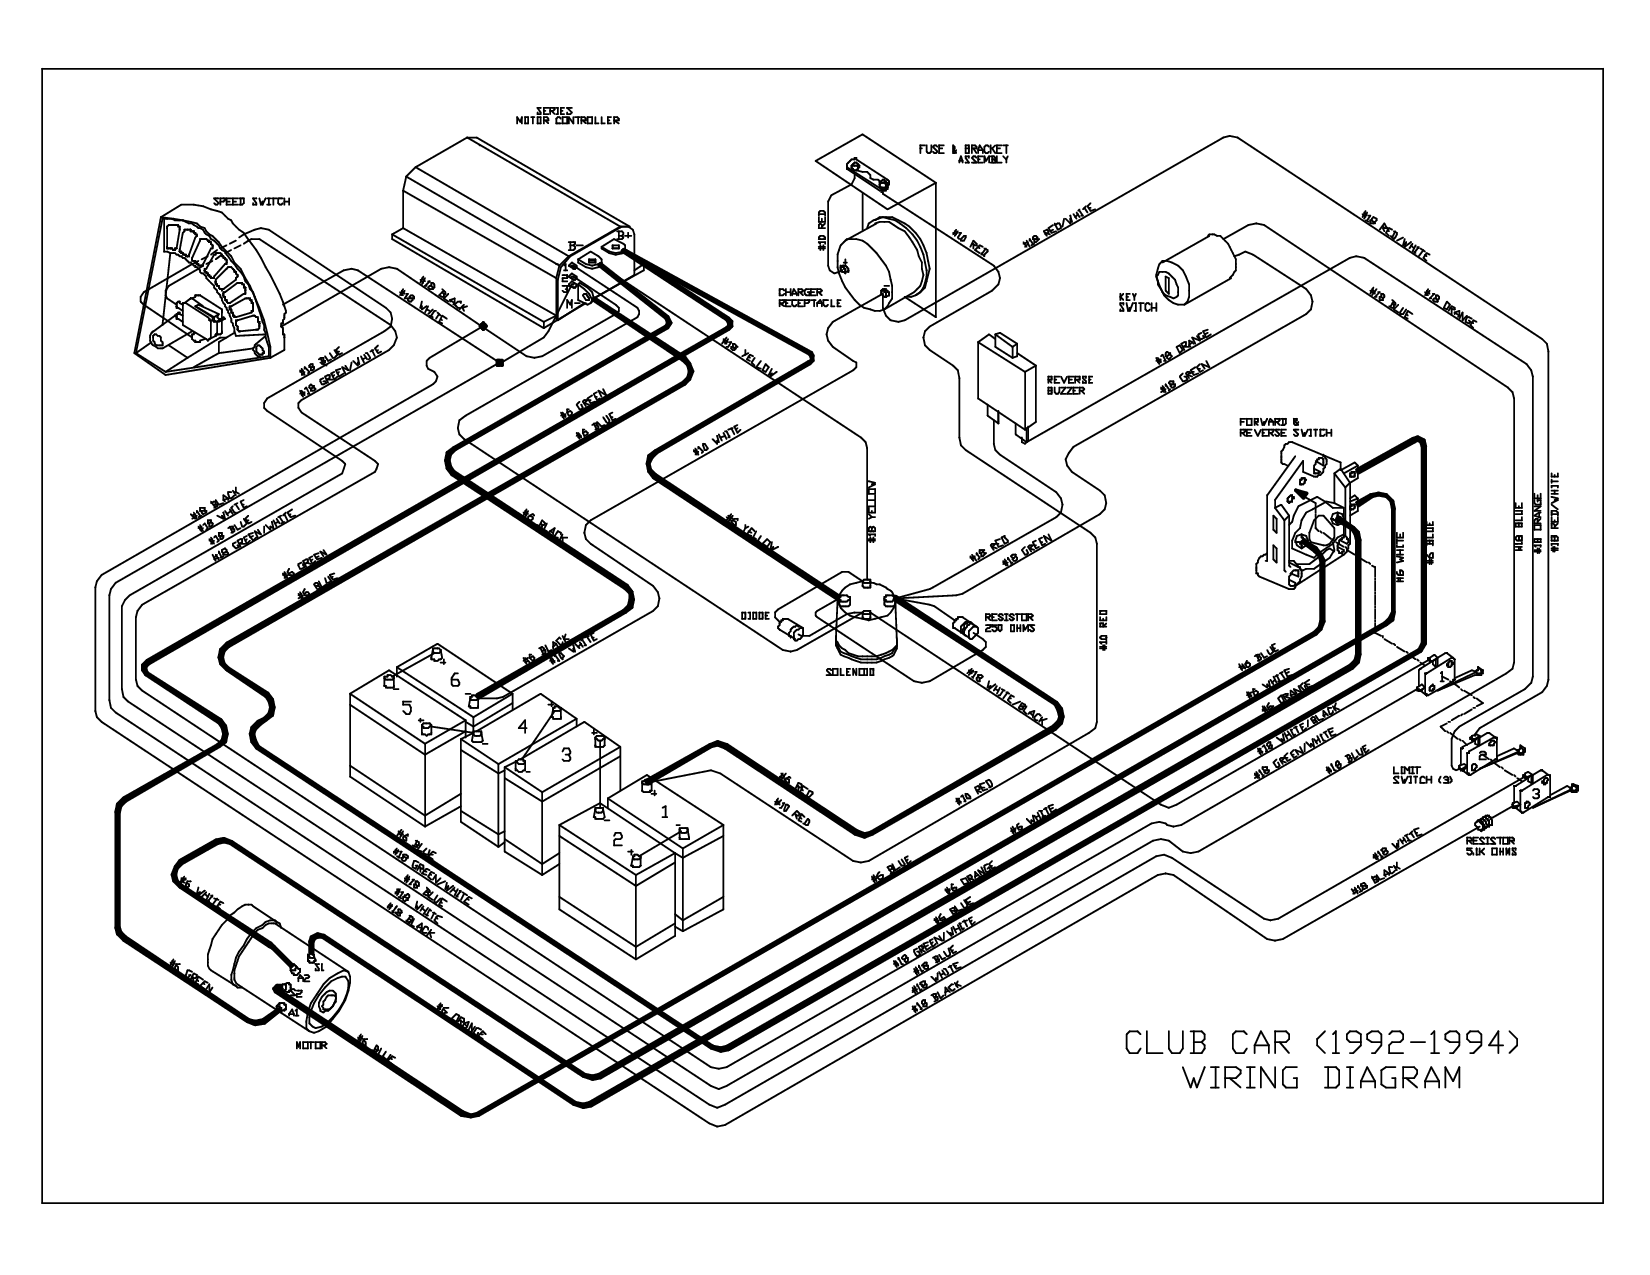 1995 club car wiring diagram | CLUB CAR (1992-1994) WIRING DIAGRAM | Club car  golf cart, Electric golf cart, Ezgo golf cart | Wiring Diagram For 1999 Yamaha Electric 48 Volt Golf Cart |  | Pinterest